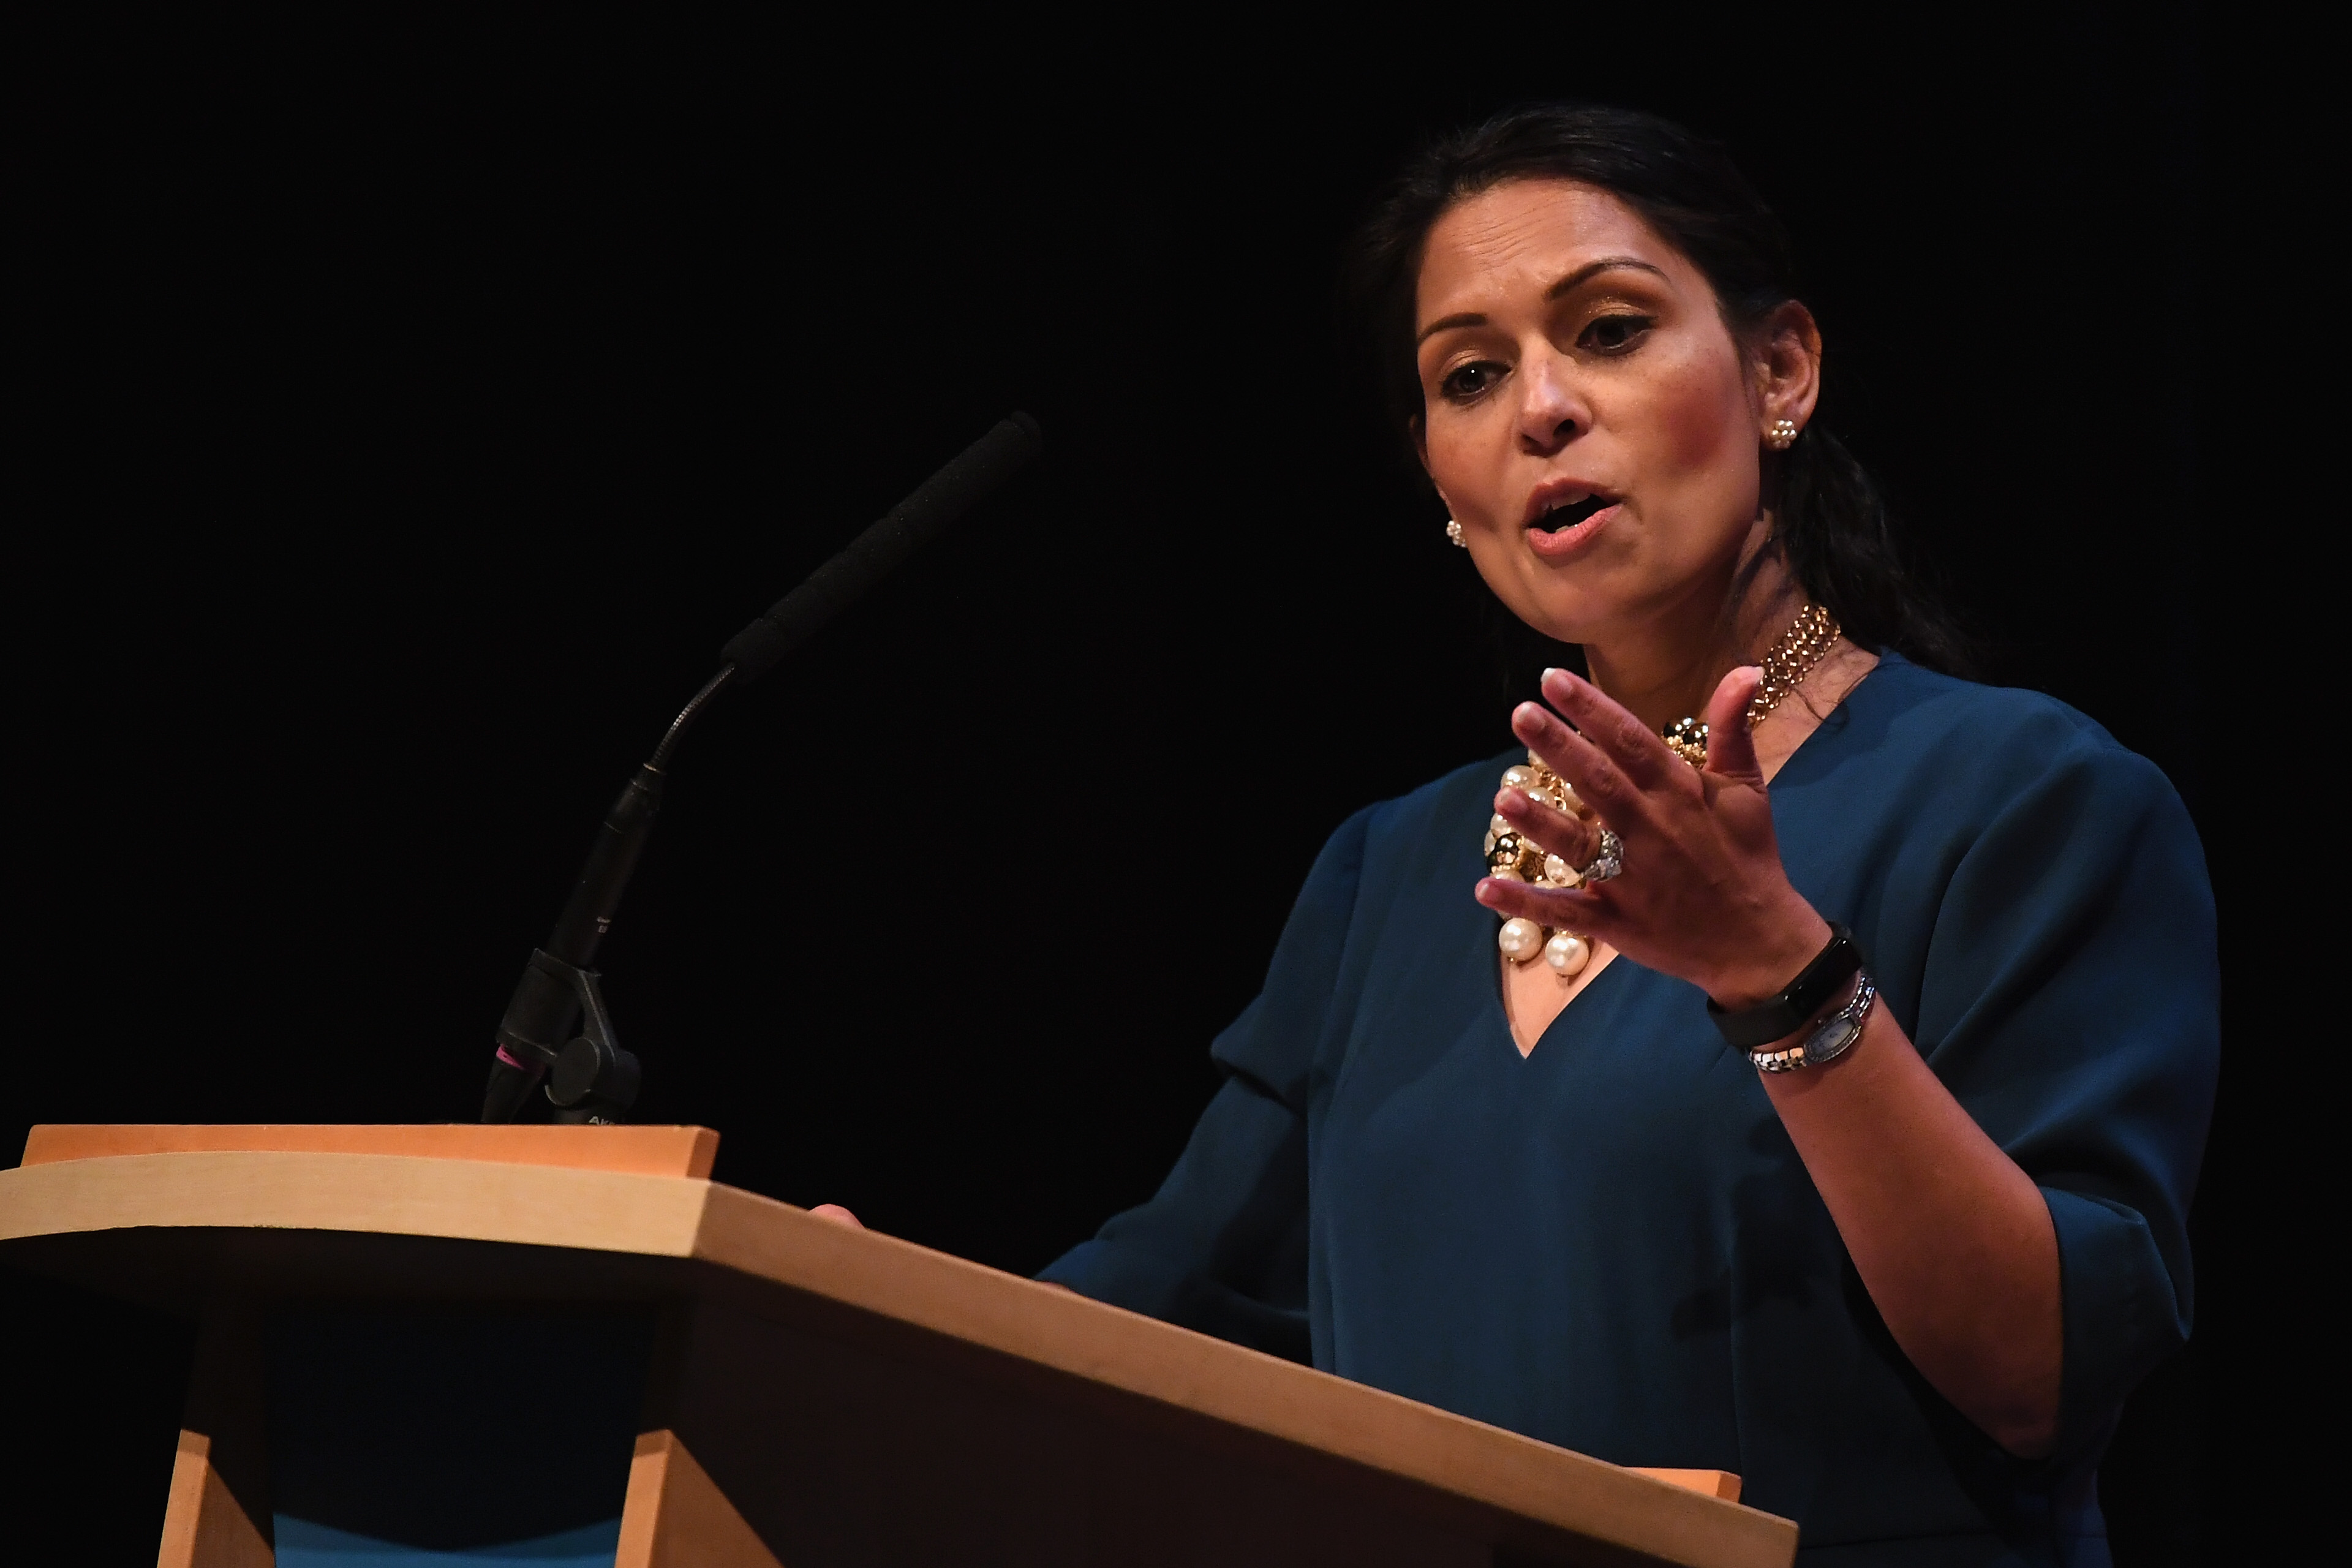 BIRMINGHAM, ENGLAND - SEPTEMBER 30: Secretary of State for International Development Priti Patel speaks during the annual Conservative Party Conference on September 30, 2018 in Birmingham, England. The Conservative Party Conference 2018 is taking place at Birmingham's International Convention Centre (ICC) from September 30 to October 3. (Photo by Jeff J Mitchell/Getty Images)